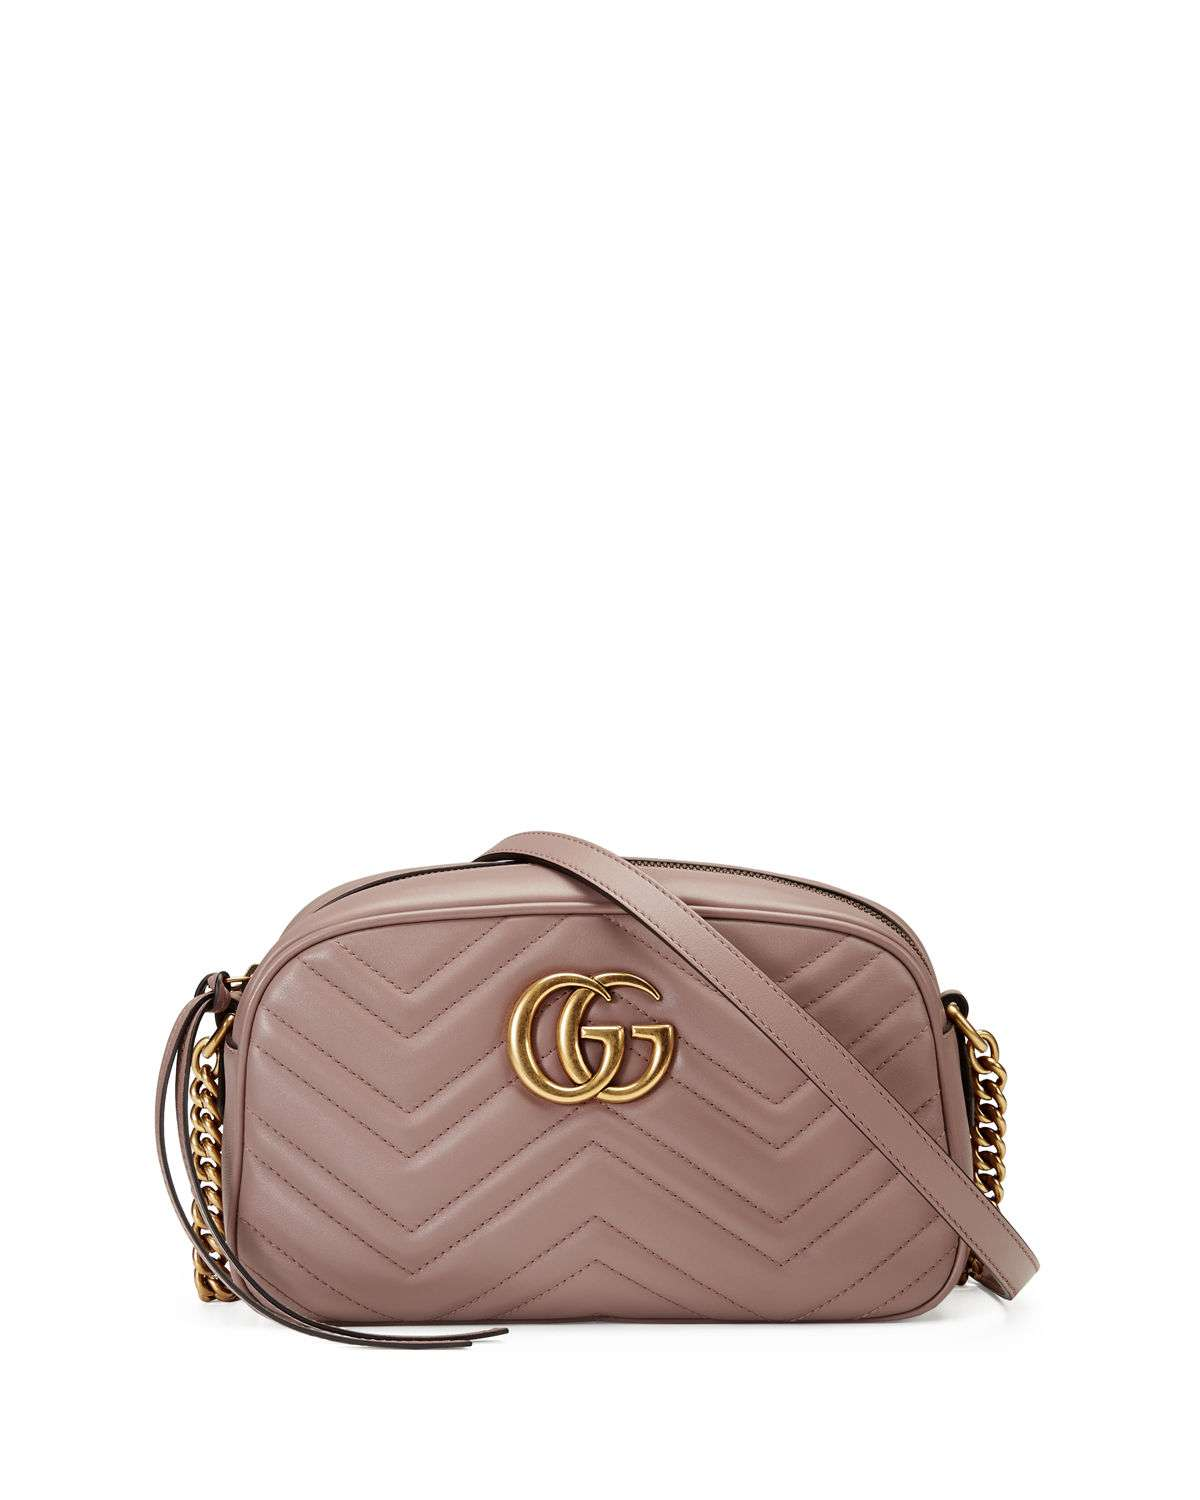 GG Marmont Small Quilted Camera Bag